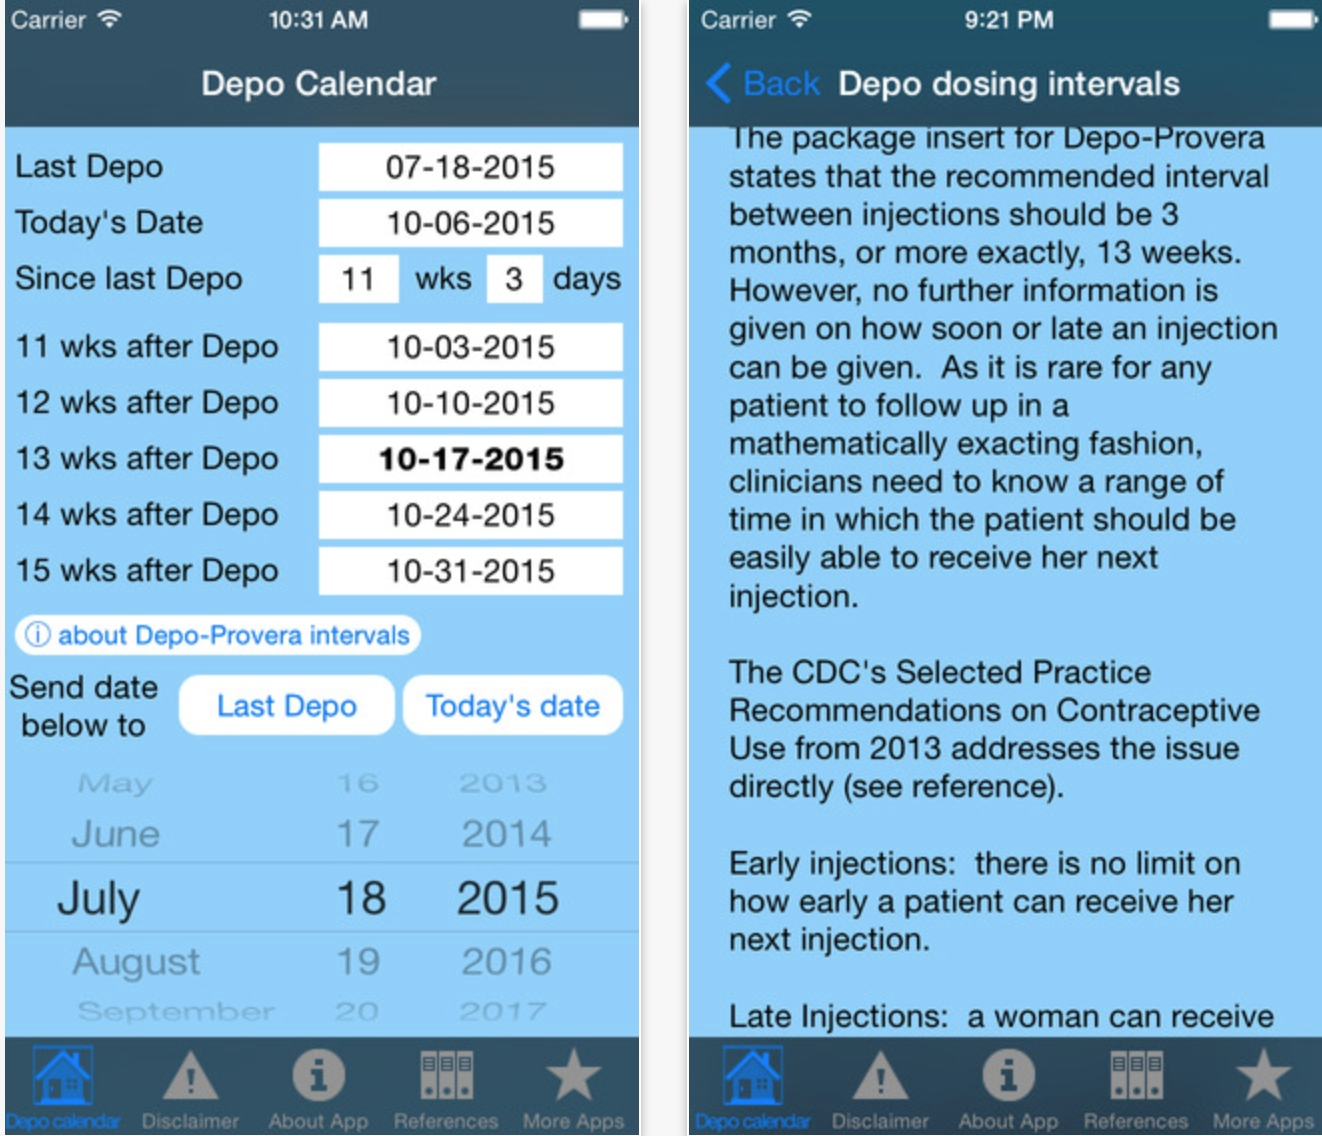 Depo Calendar App Could Significantly Improve Contraception  Depo Prevano Calendar Calculator